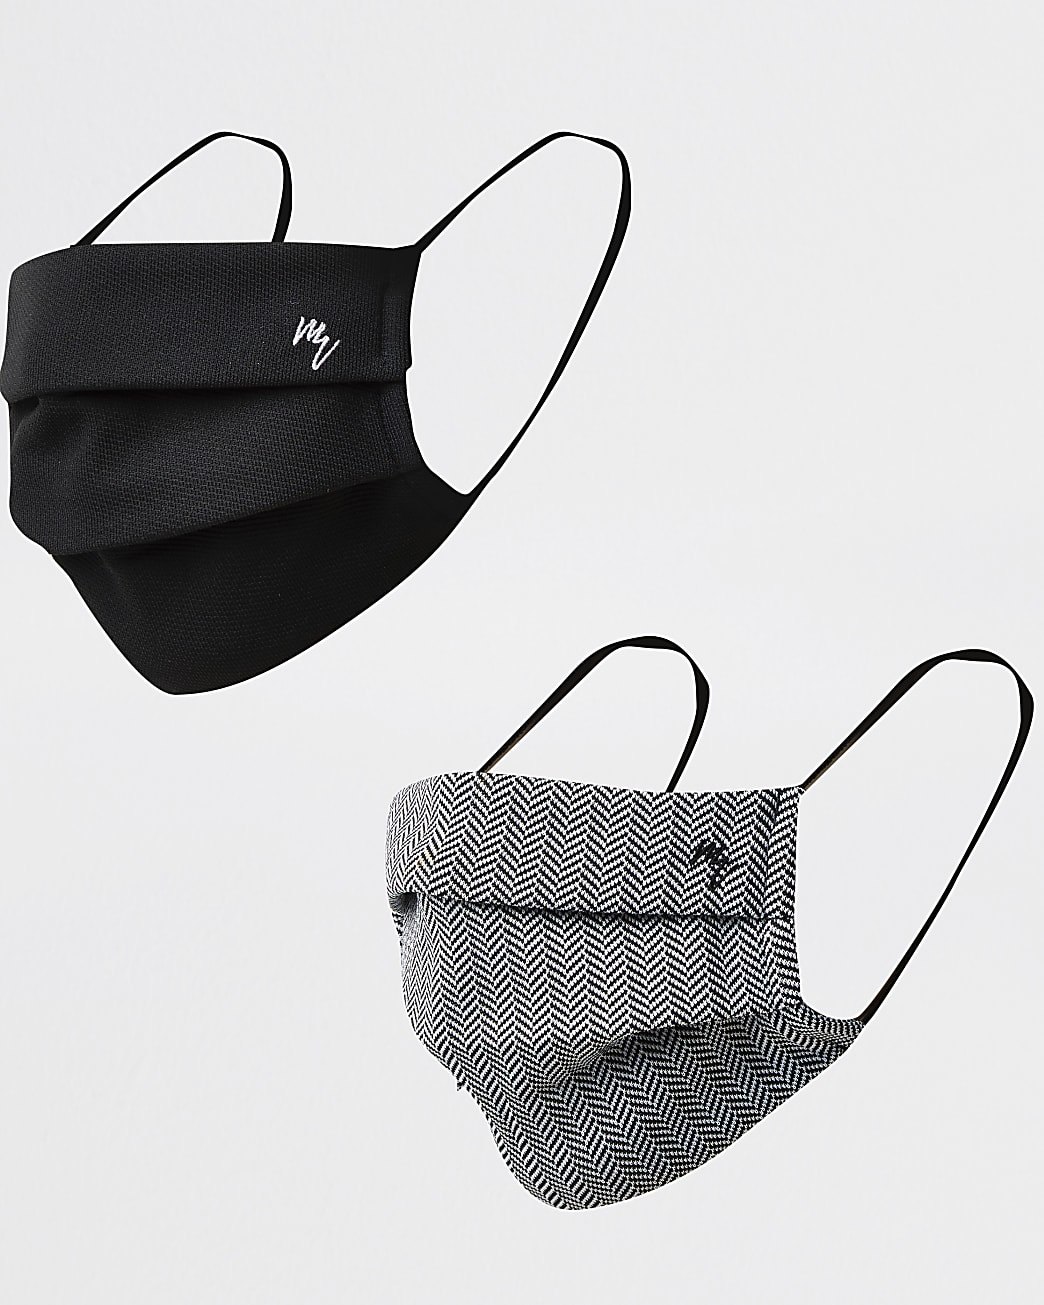 Black Maison Riviera face covering pack of 2